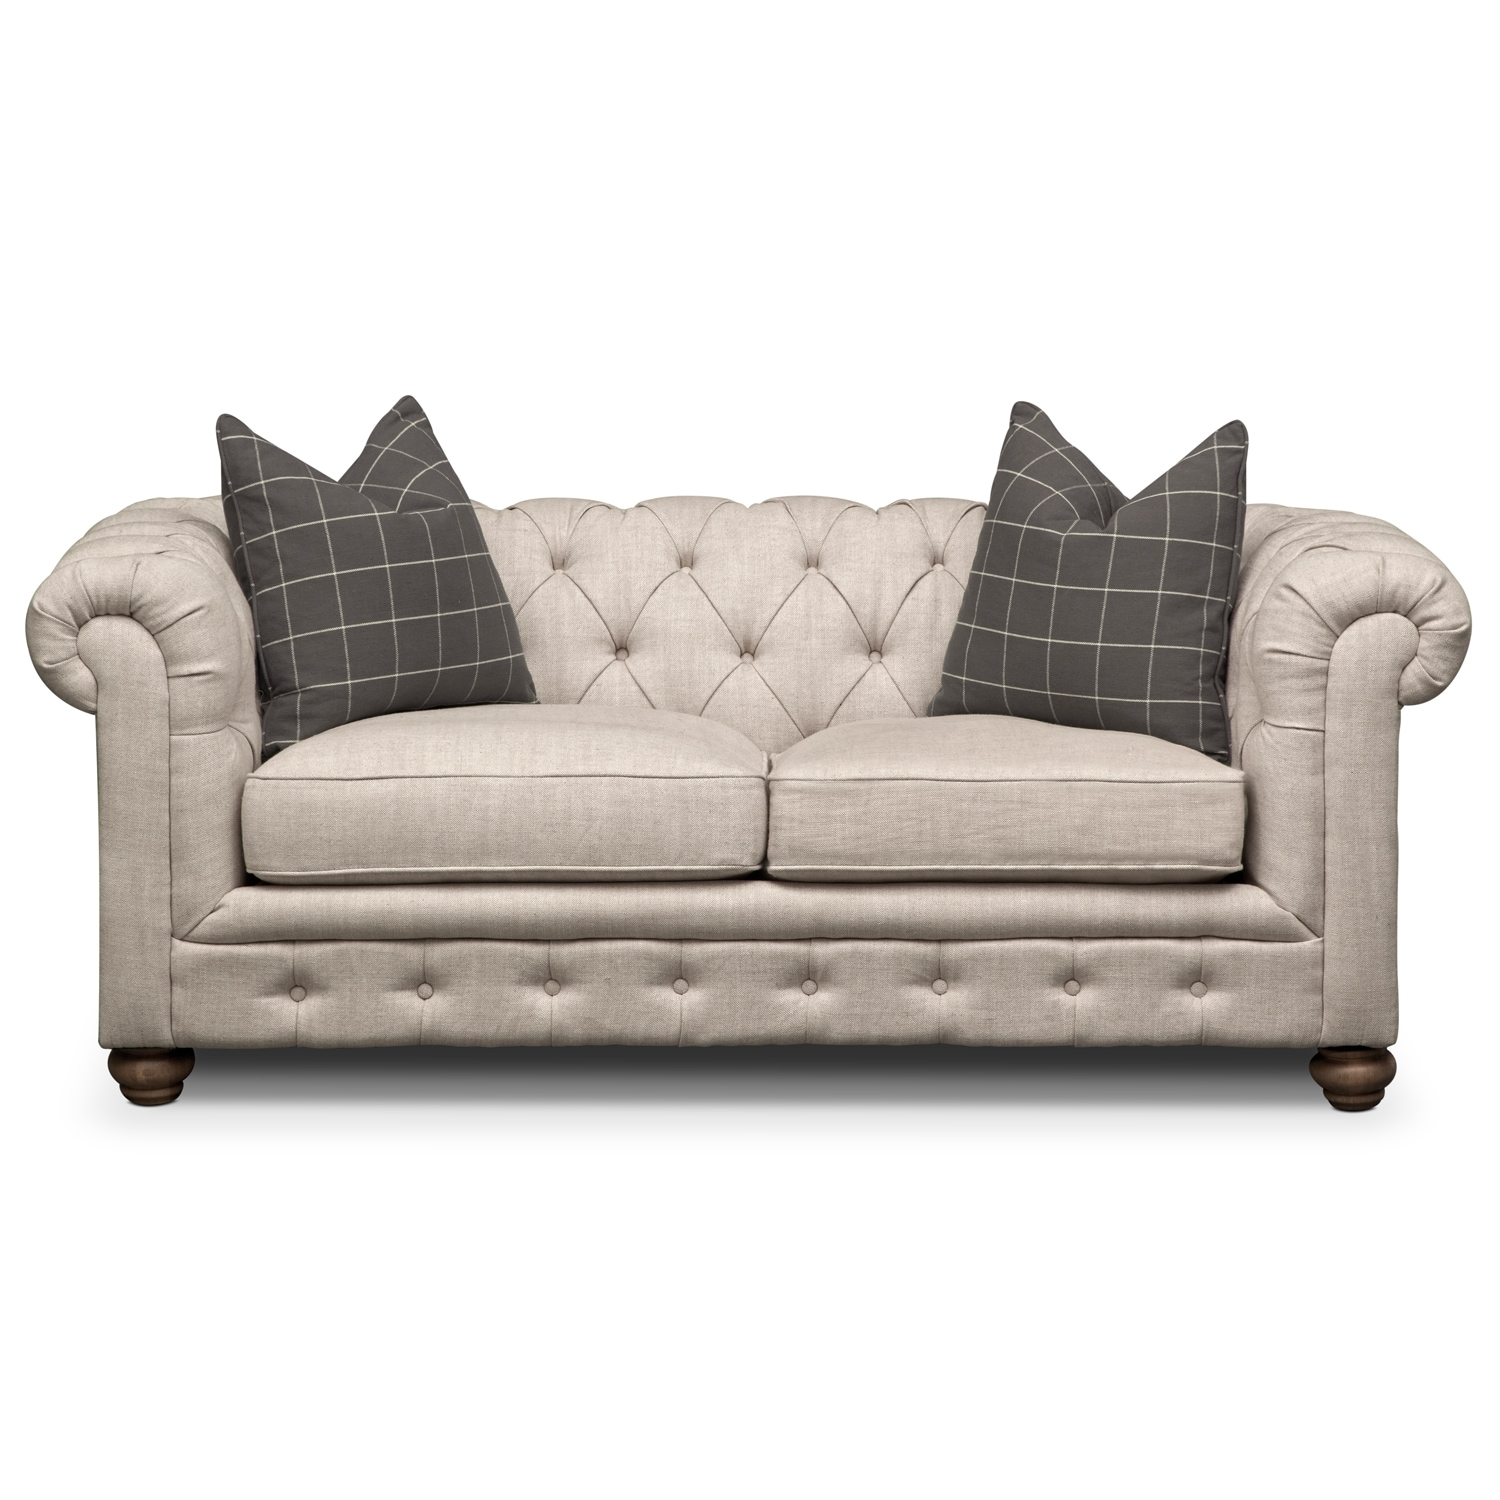 Madeline Sofa Madeline Sofa Beige American Signature  : 293328 from thesofa.droogkast.com size 1500 x 1500 jpeg 211kB